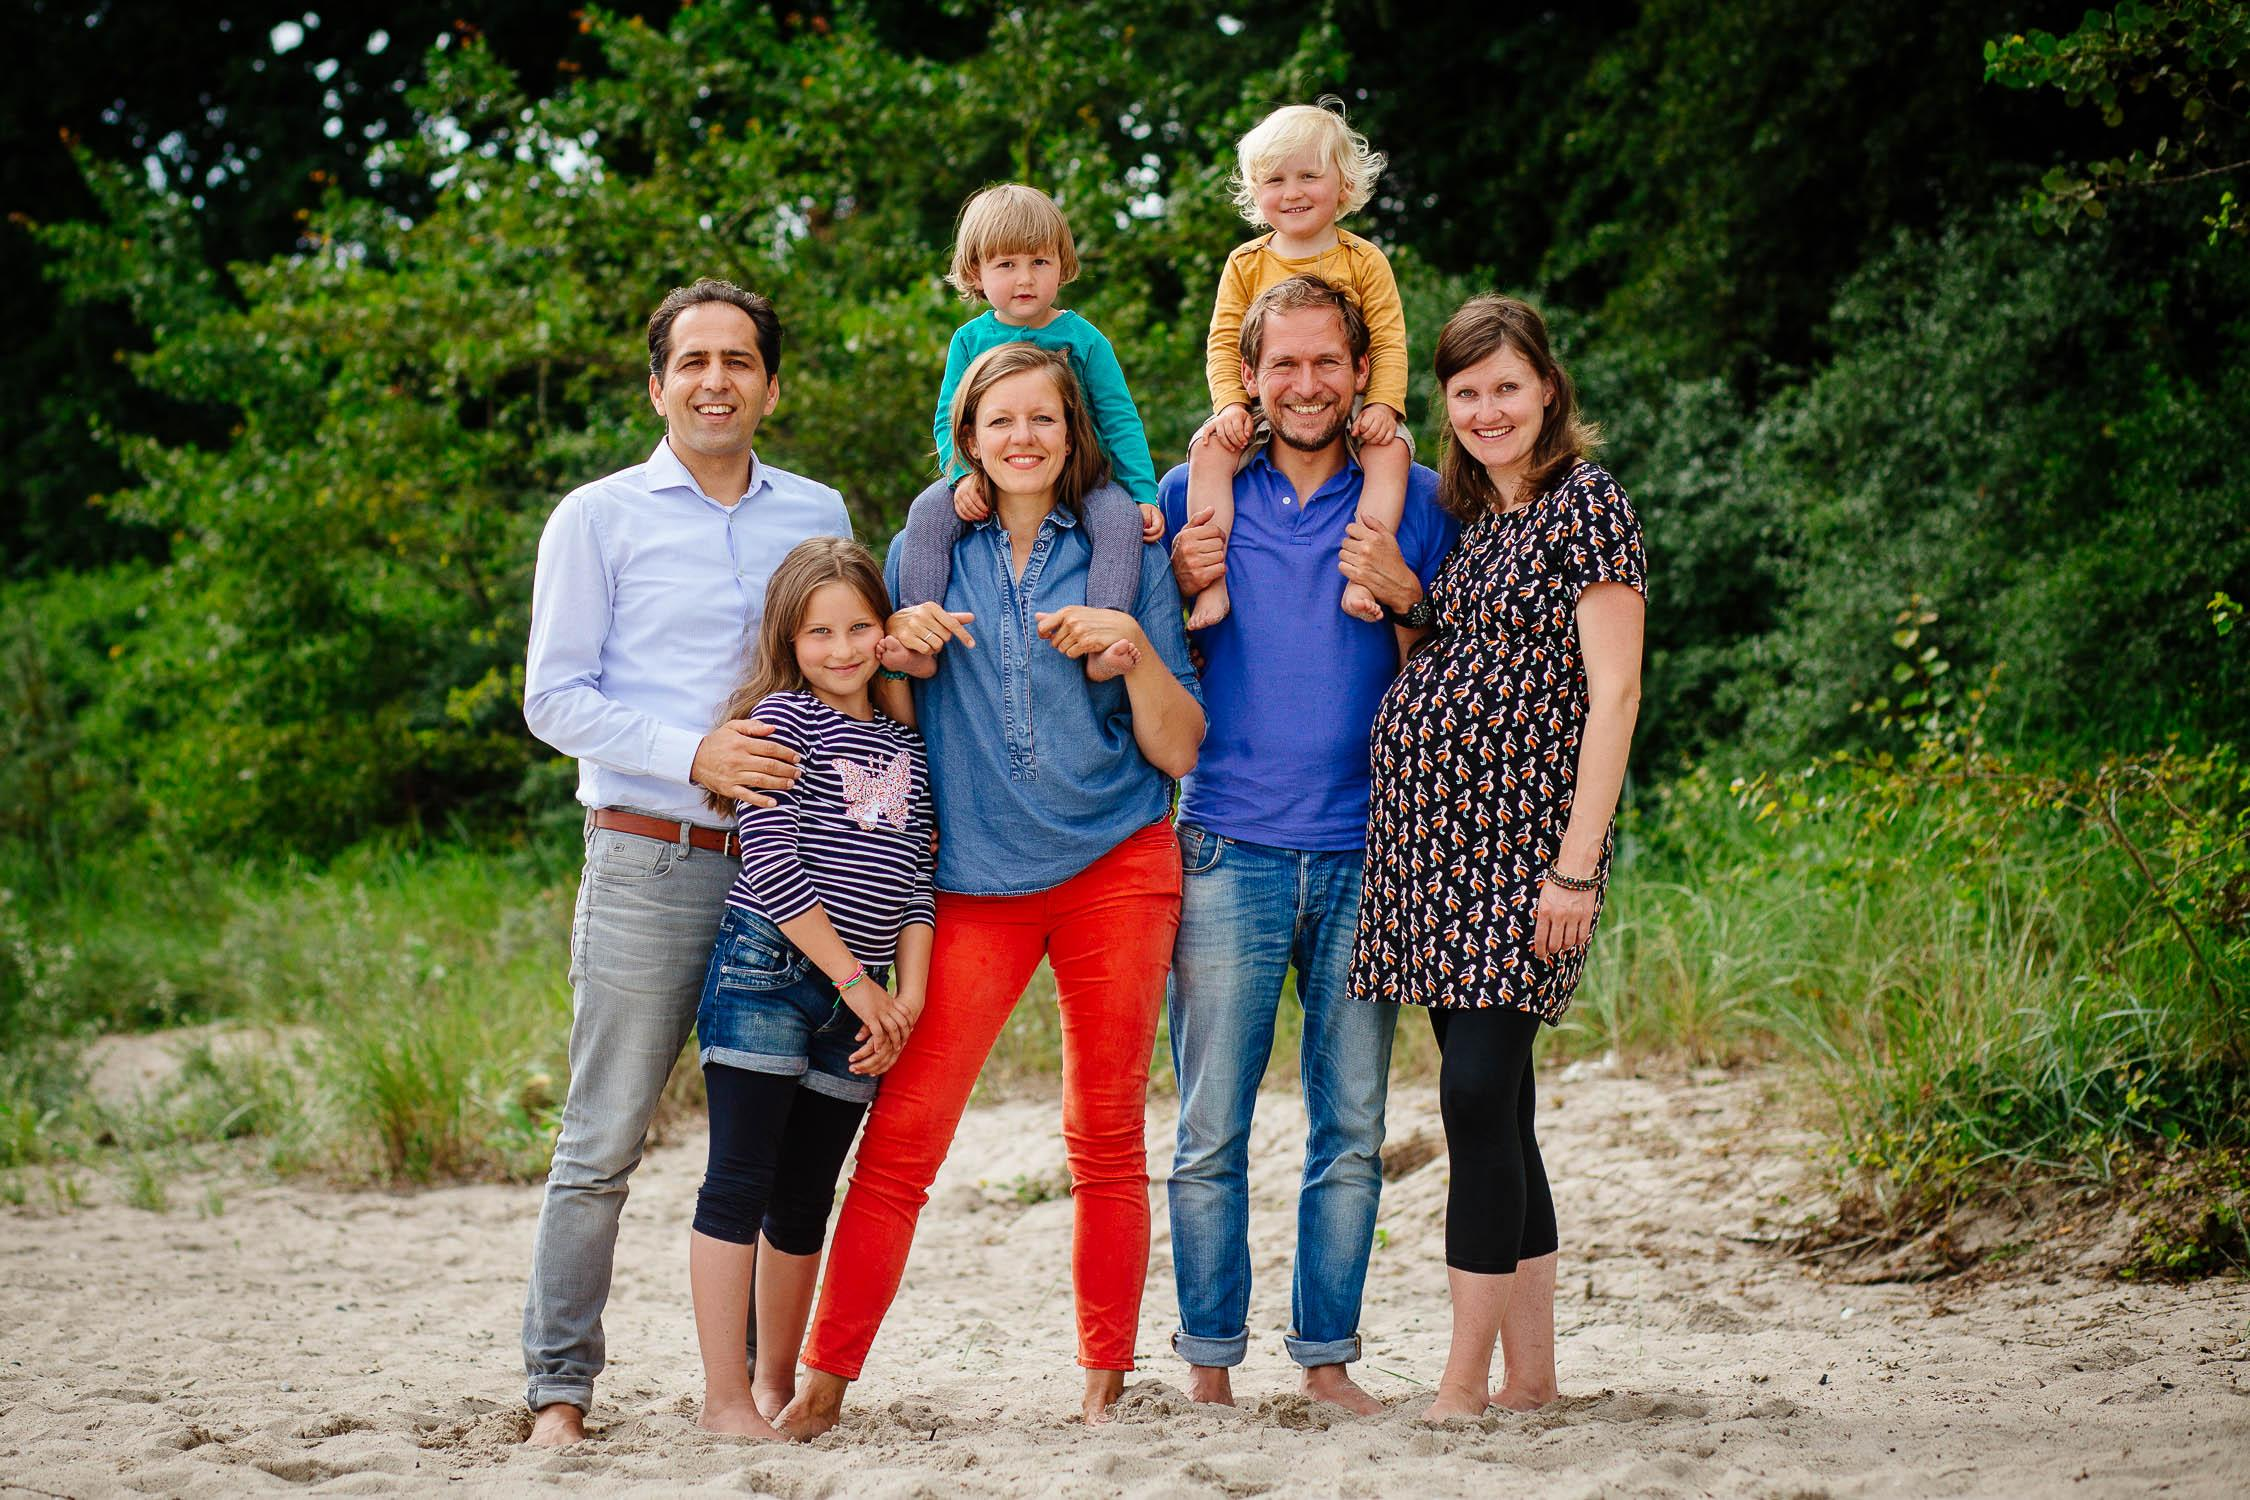 Familienshooting in Pelzerhaken 1